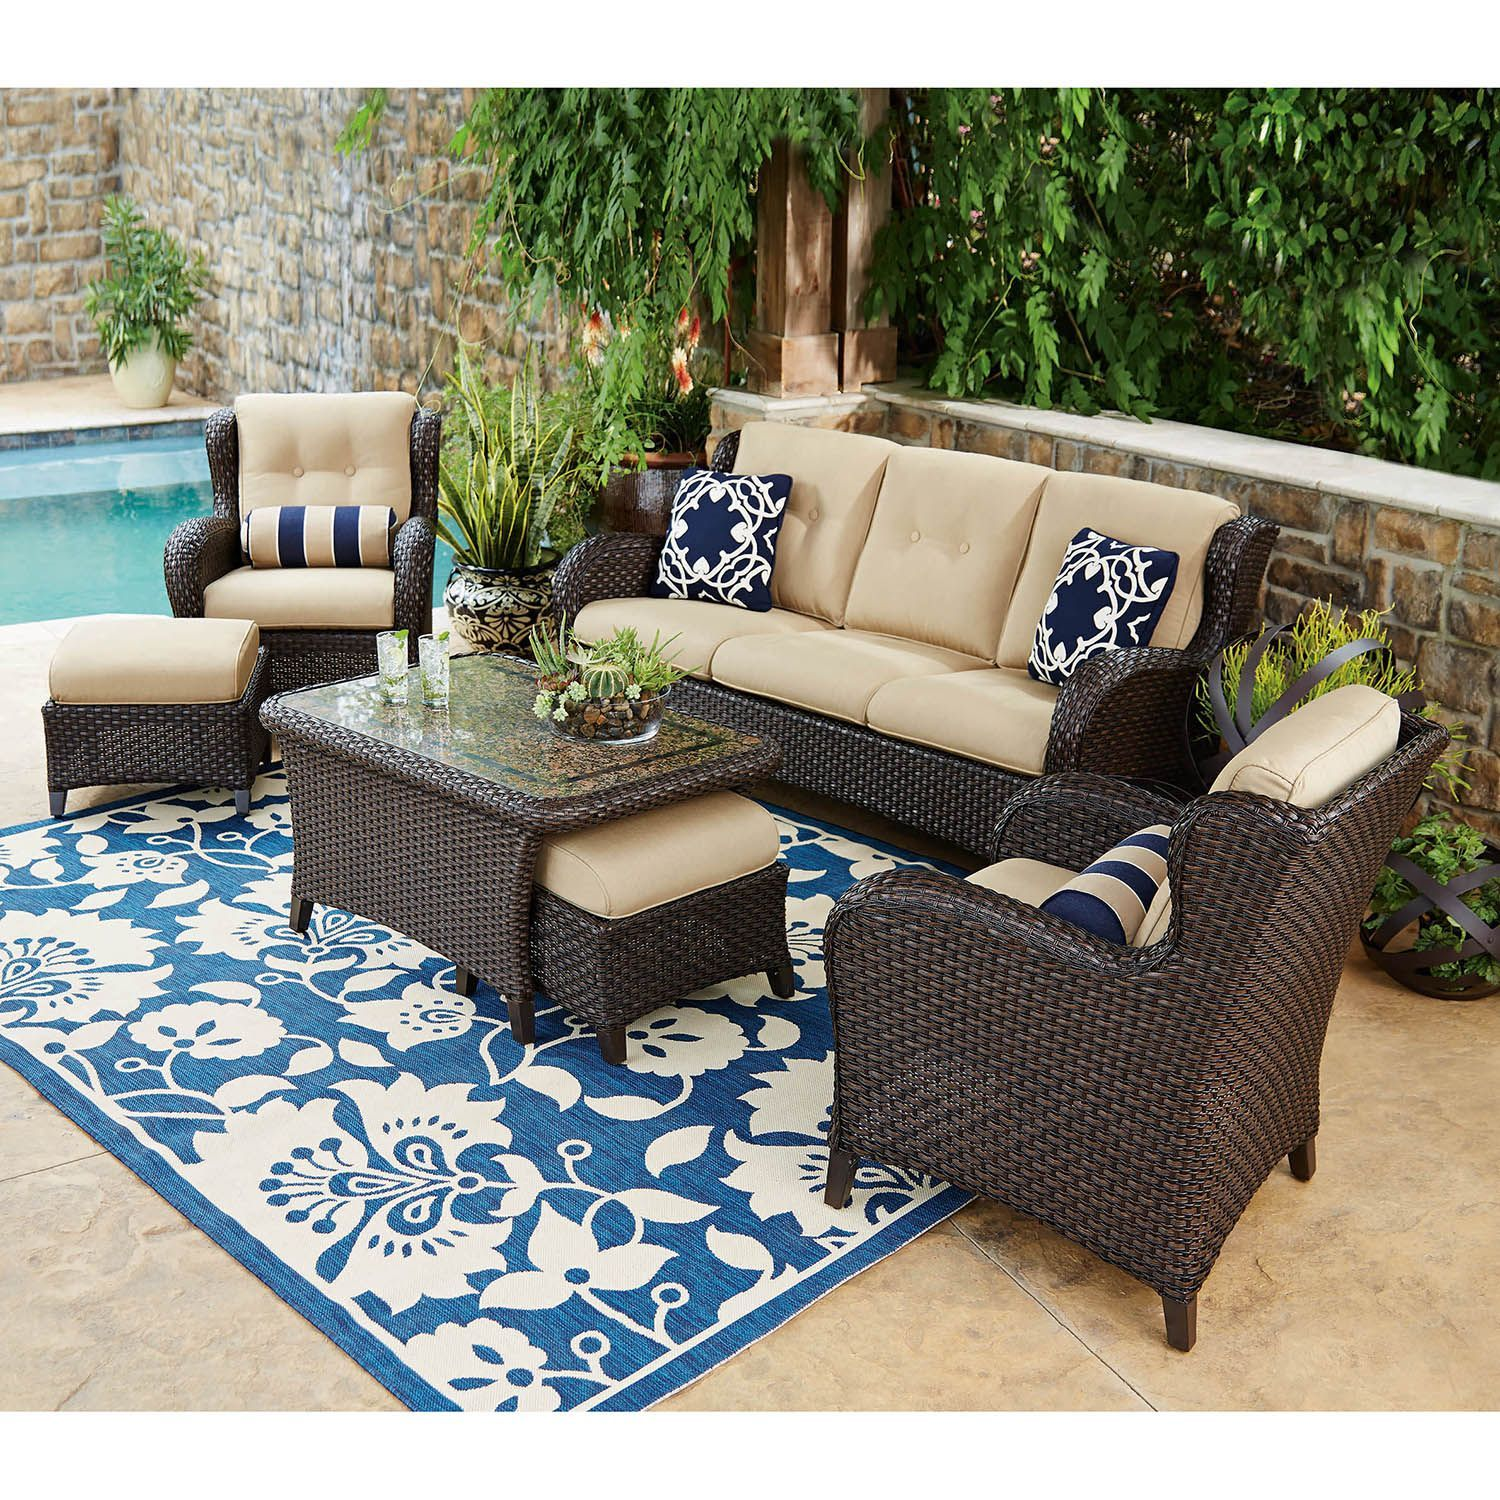 Member's Mark Heritage Deep Seating Set - Sam's Club ...